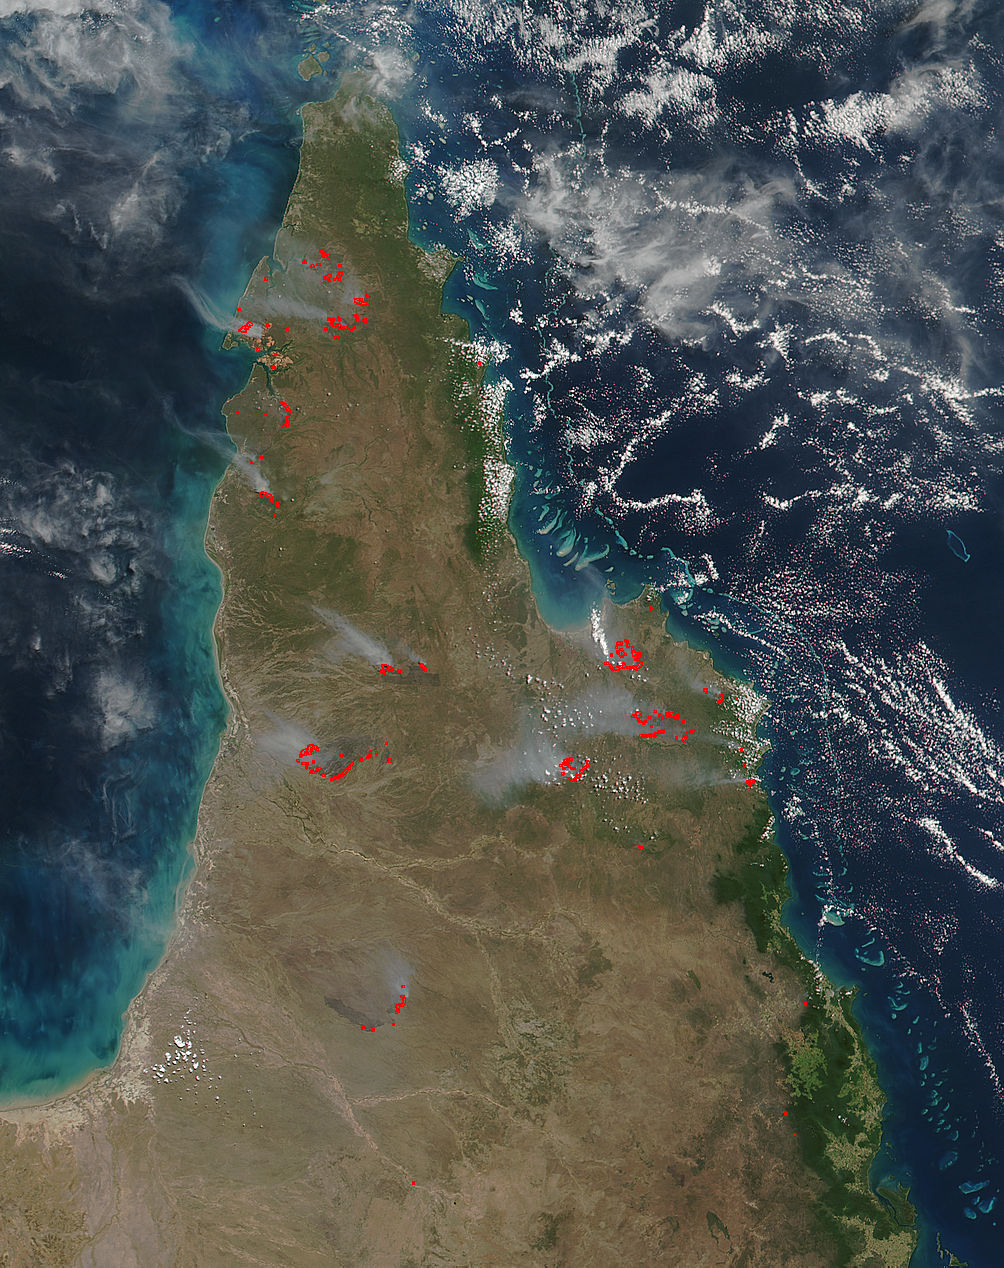 Fires across Cape York Peninsula, Australia - related image preview